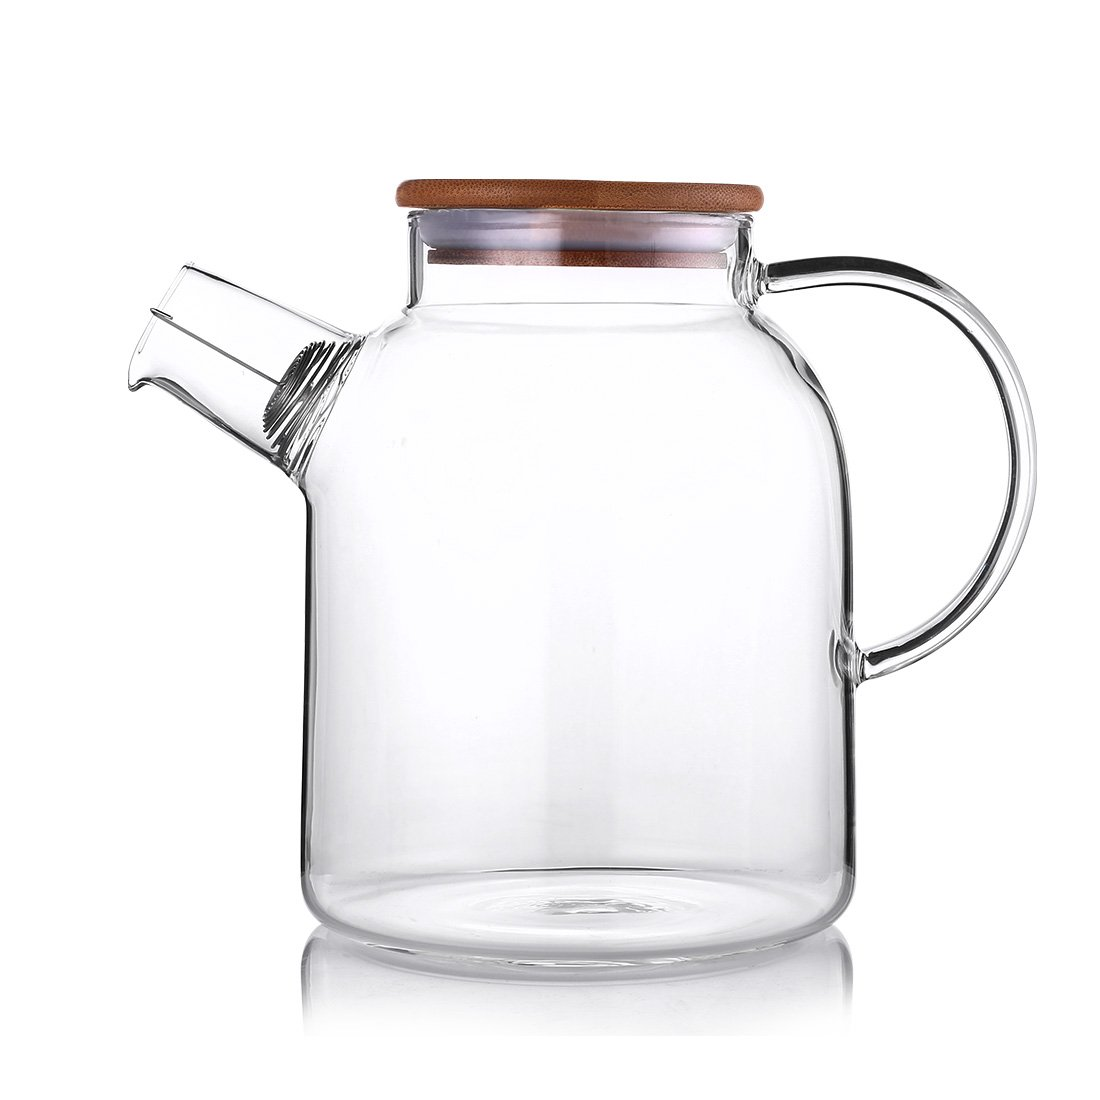 ONEISALL GYBL010 1600ML Glass Teapot with Stainless Strainer, Functional Borosilicate Glass Water Pitcher with Bamboo Lid Huizhou Weifan Trading Co. Ltd